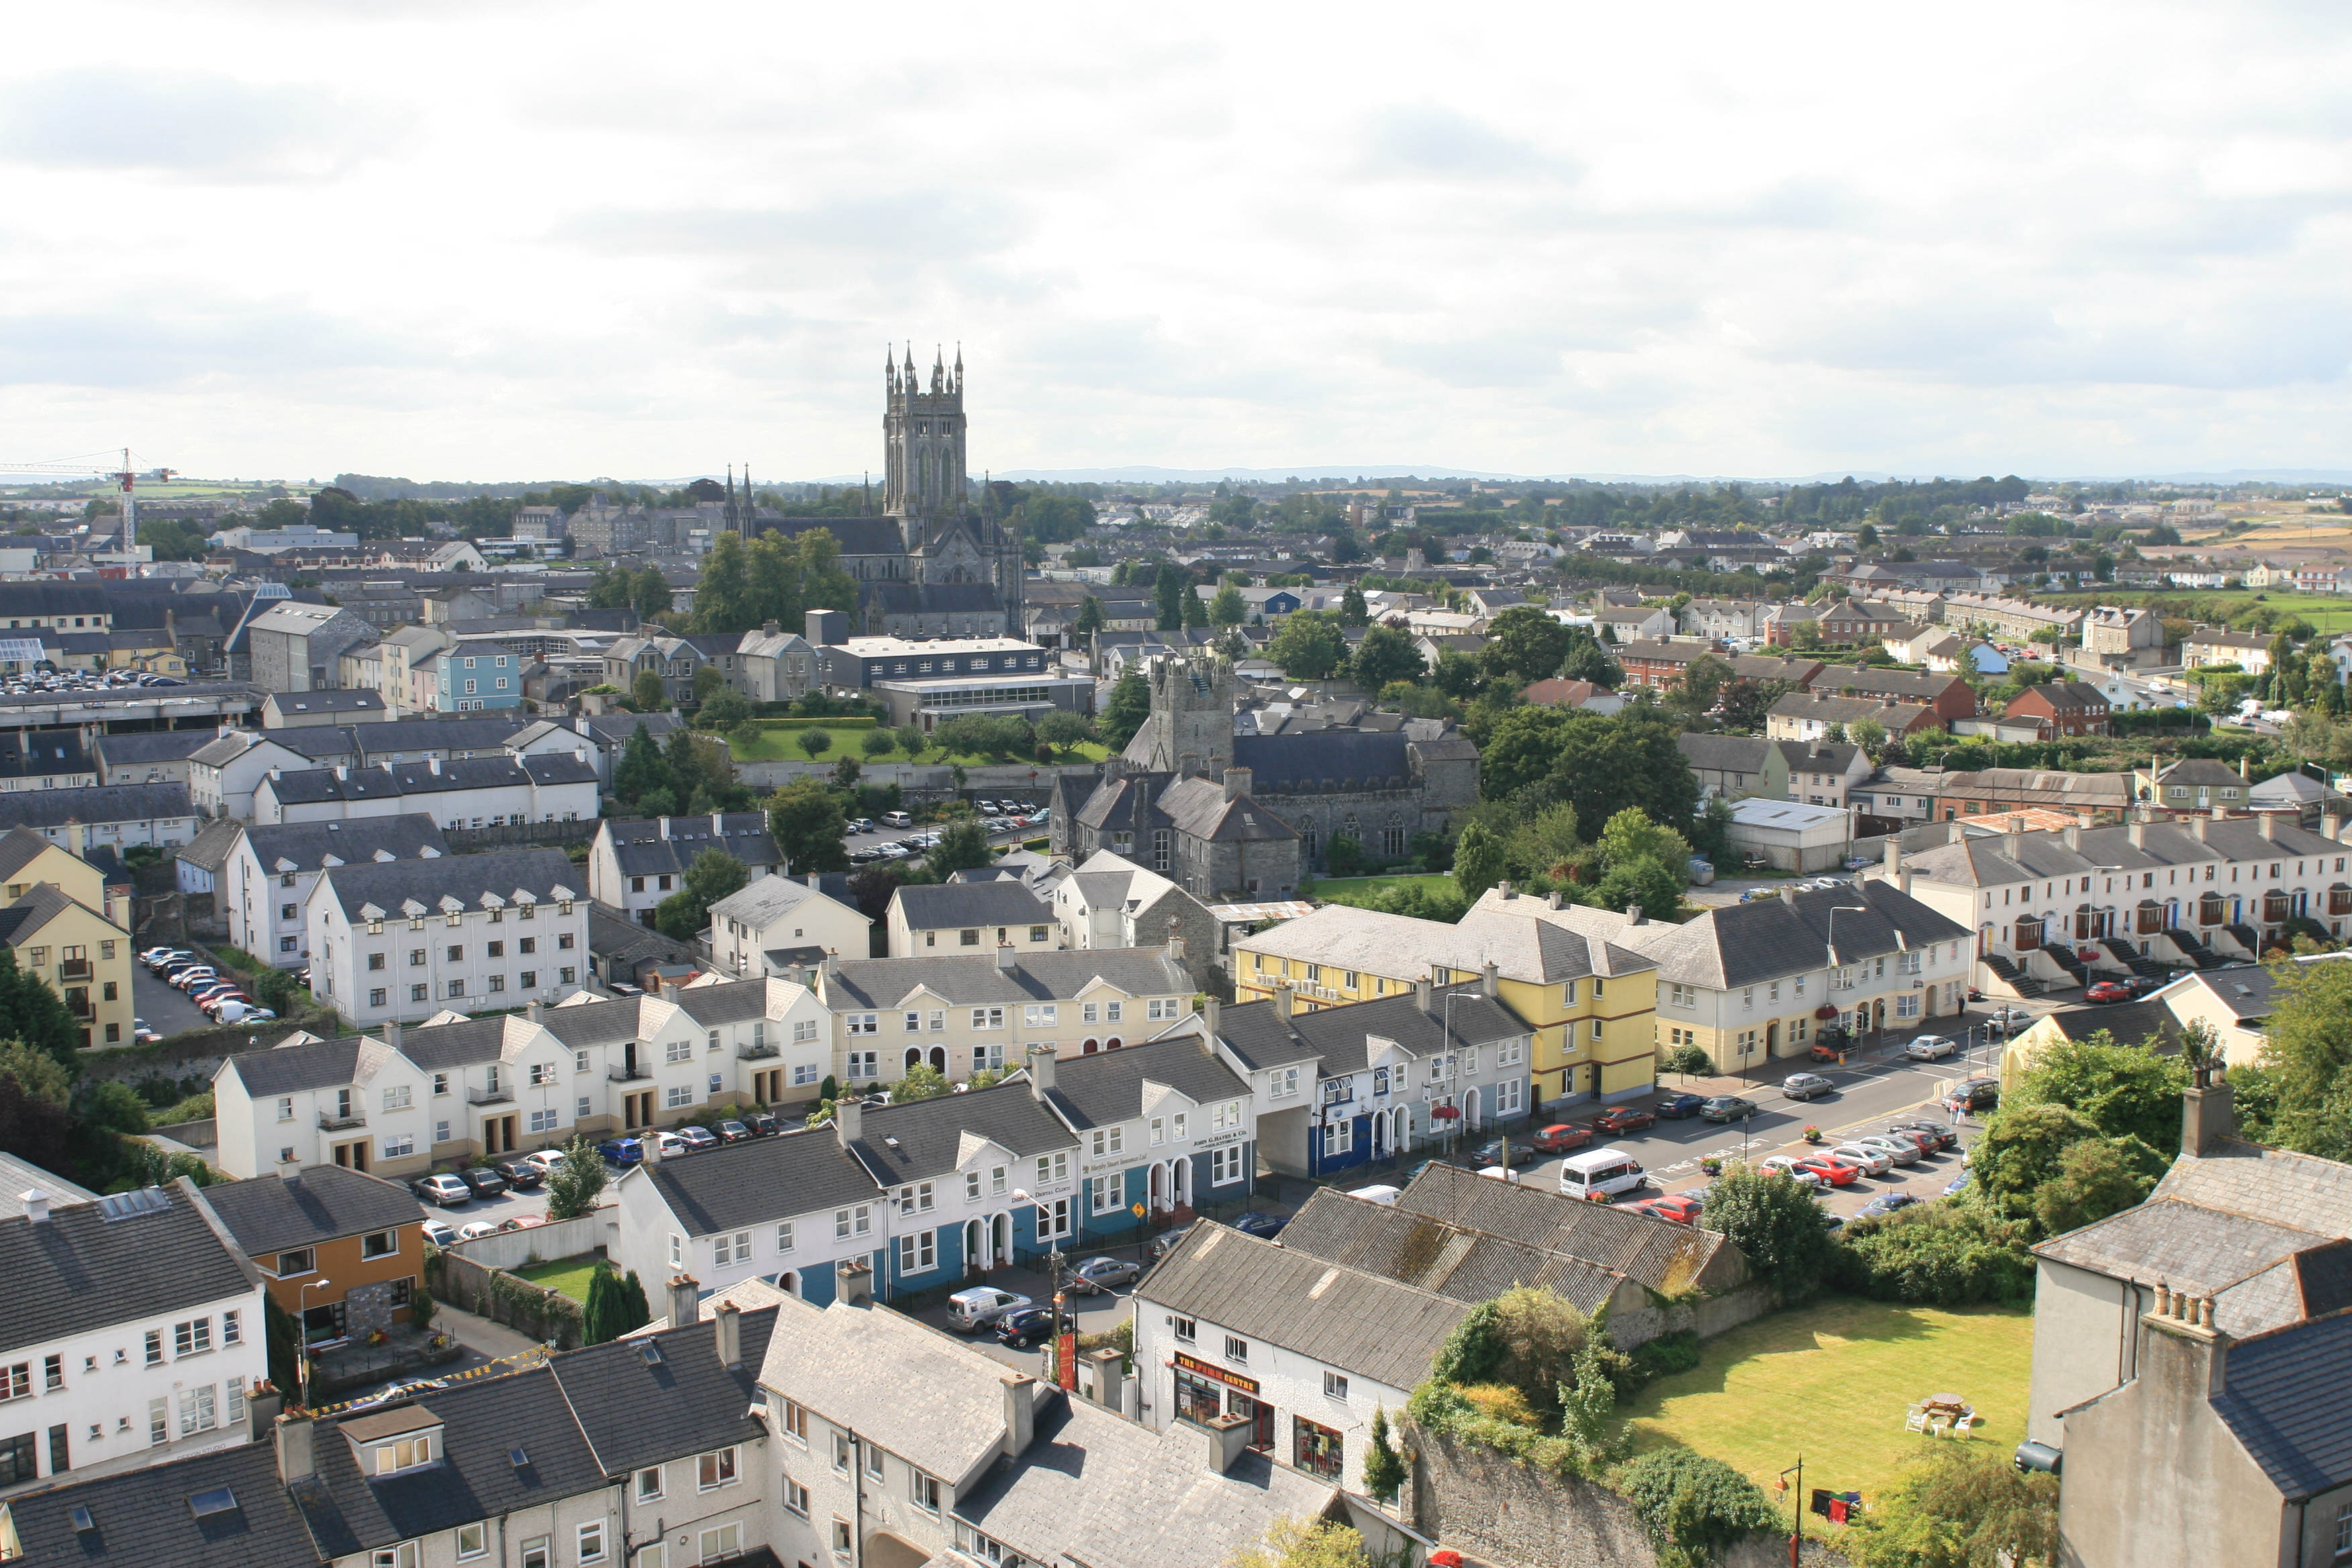 File:Kilkenny View from Round Tower to St Mary Cathedral 2007 08 28.jpg - Wikimedia Commons